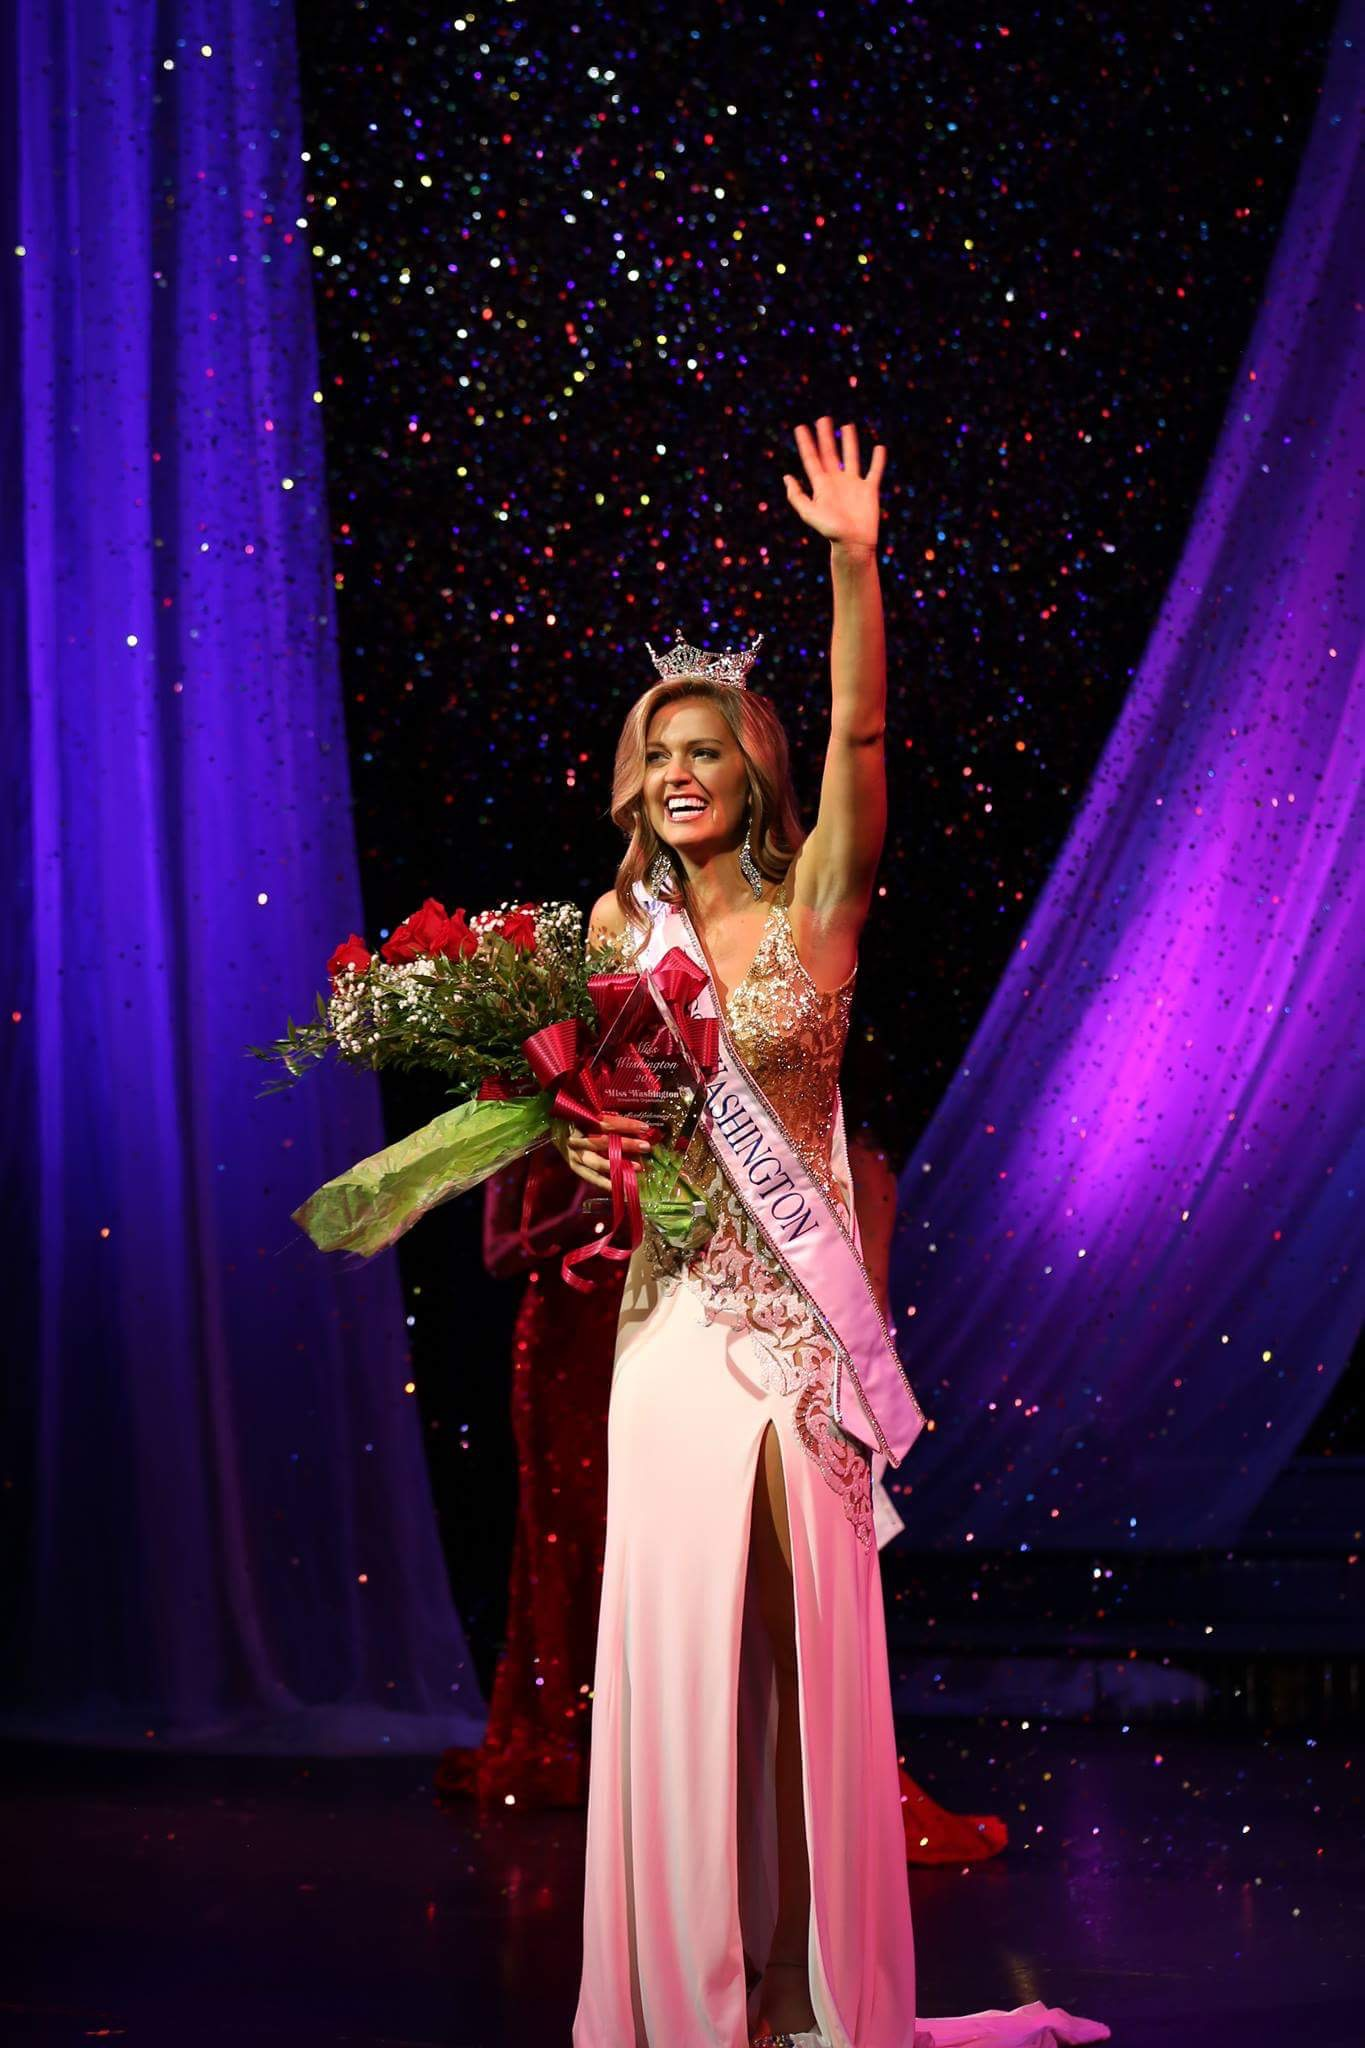 8 things I've learned from competing in pageants